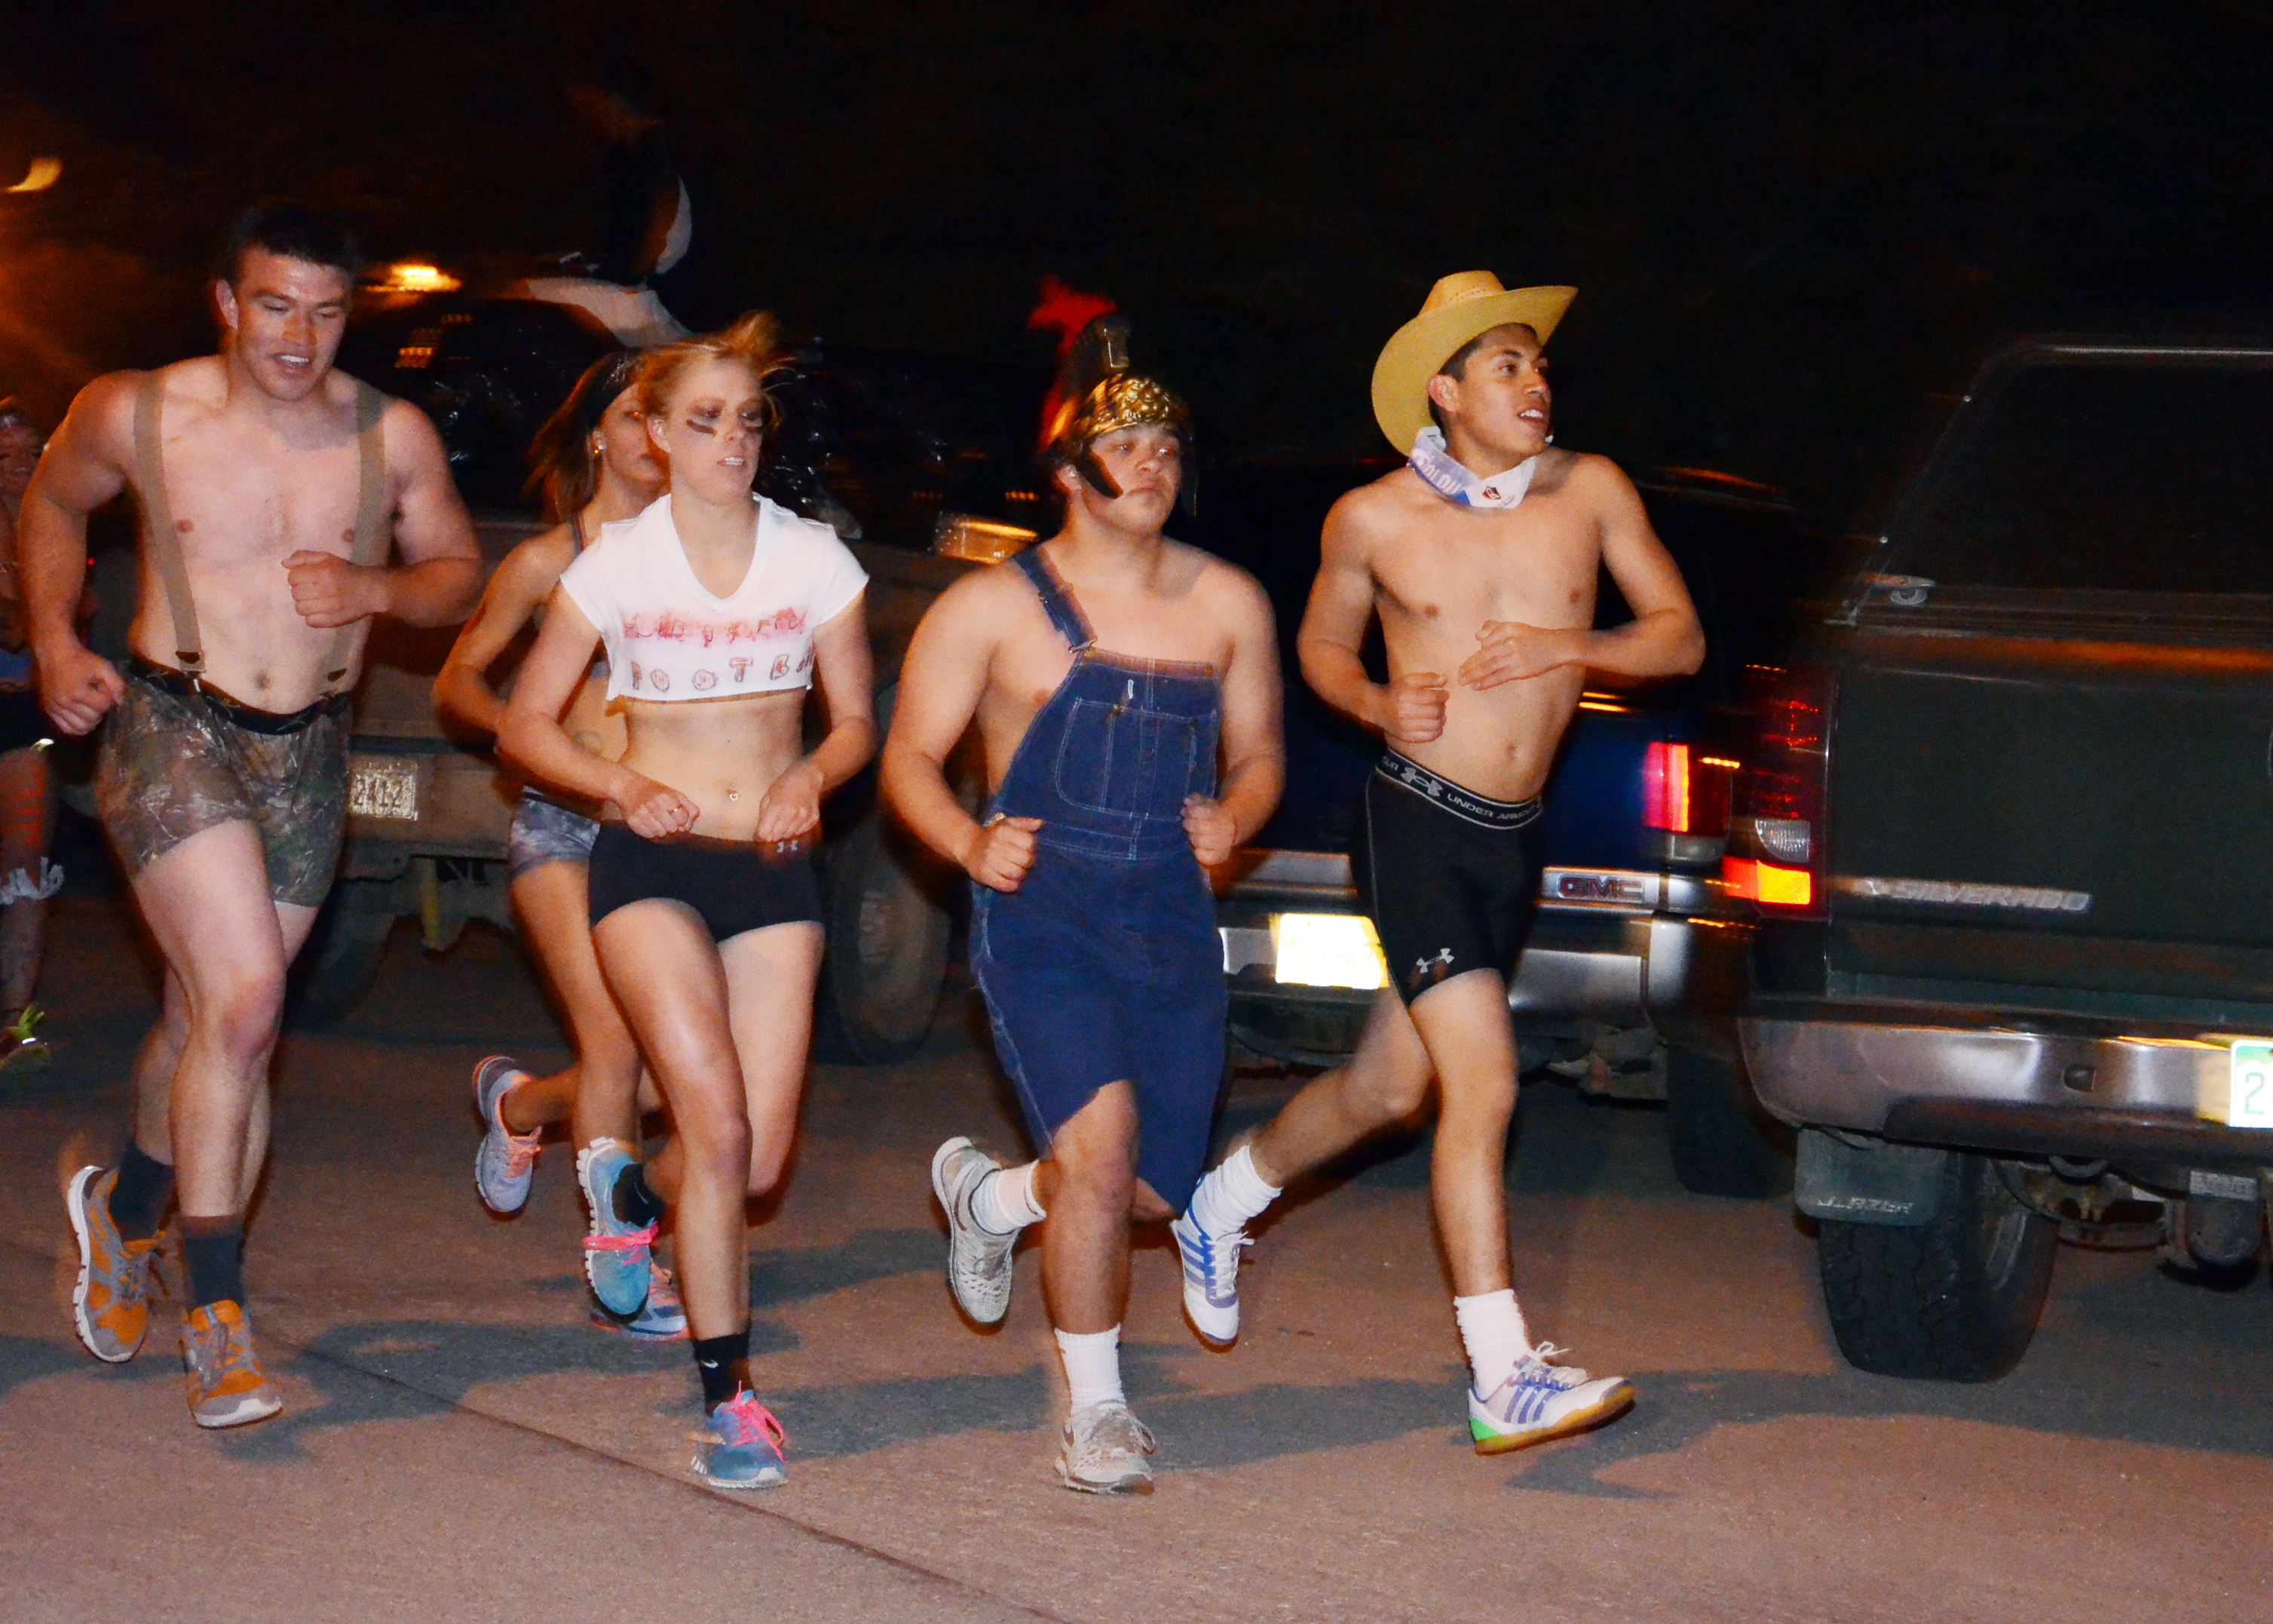 Nearly Naked Mile Clothing Drive | On Wed., October 27